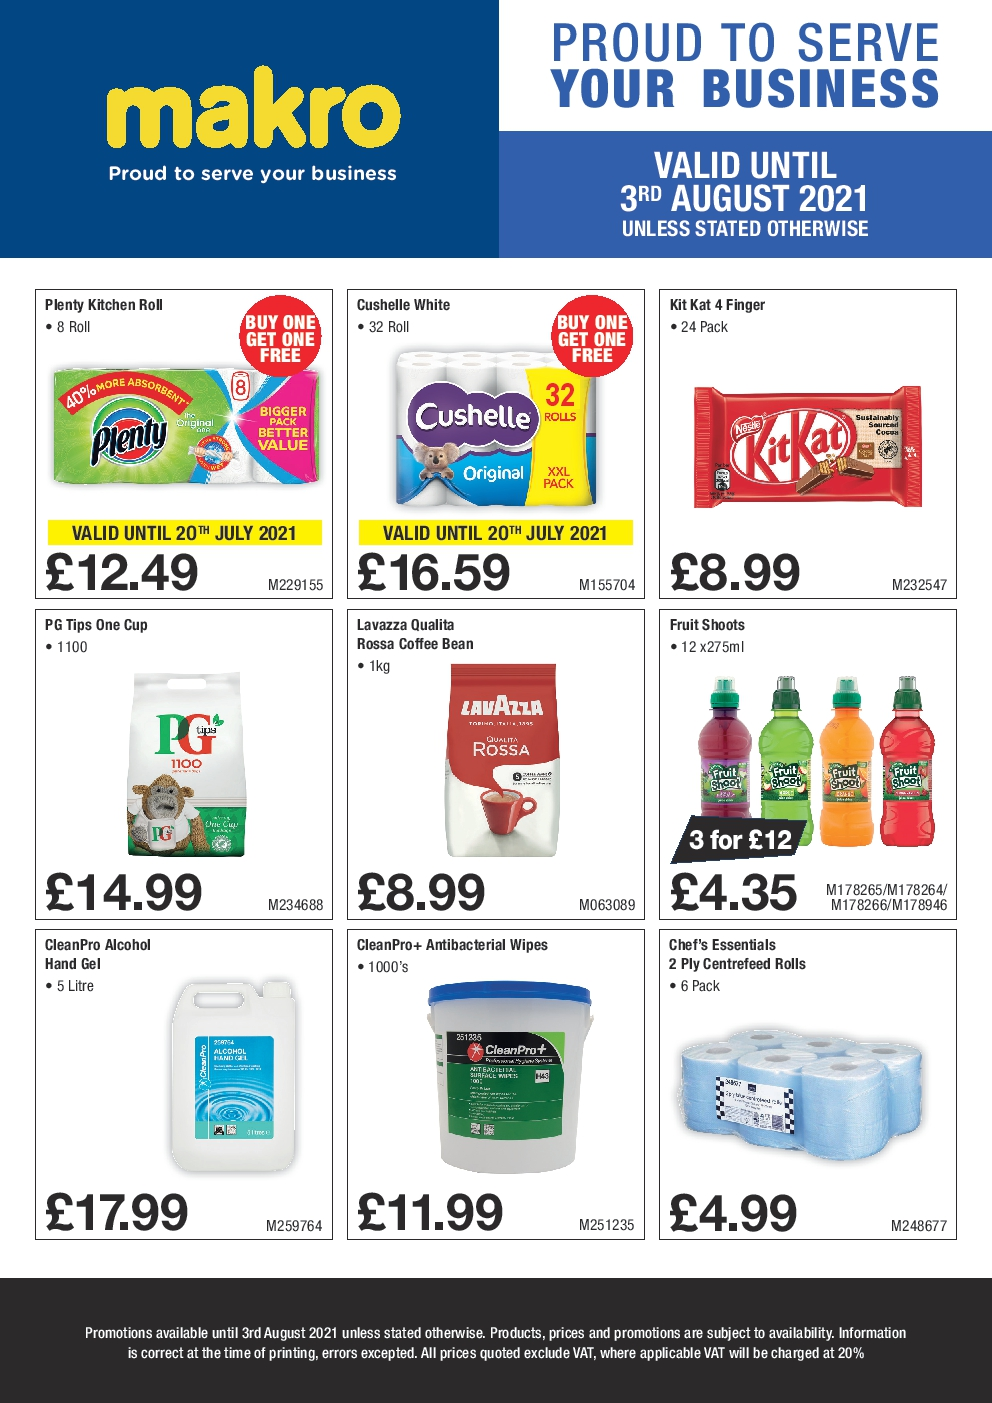 Makro Offers Valid until 3rd August 2021 Professional Cleaning